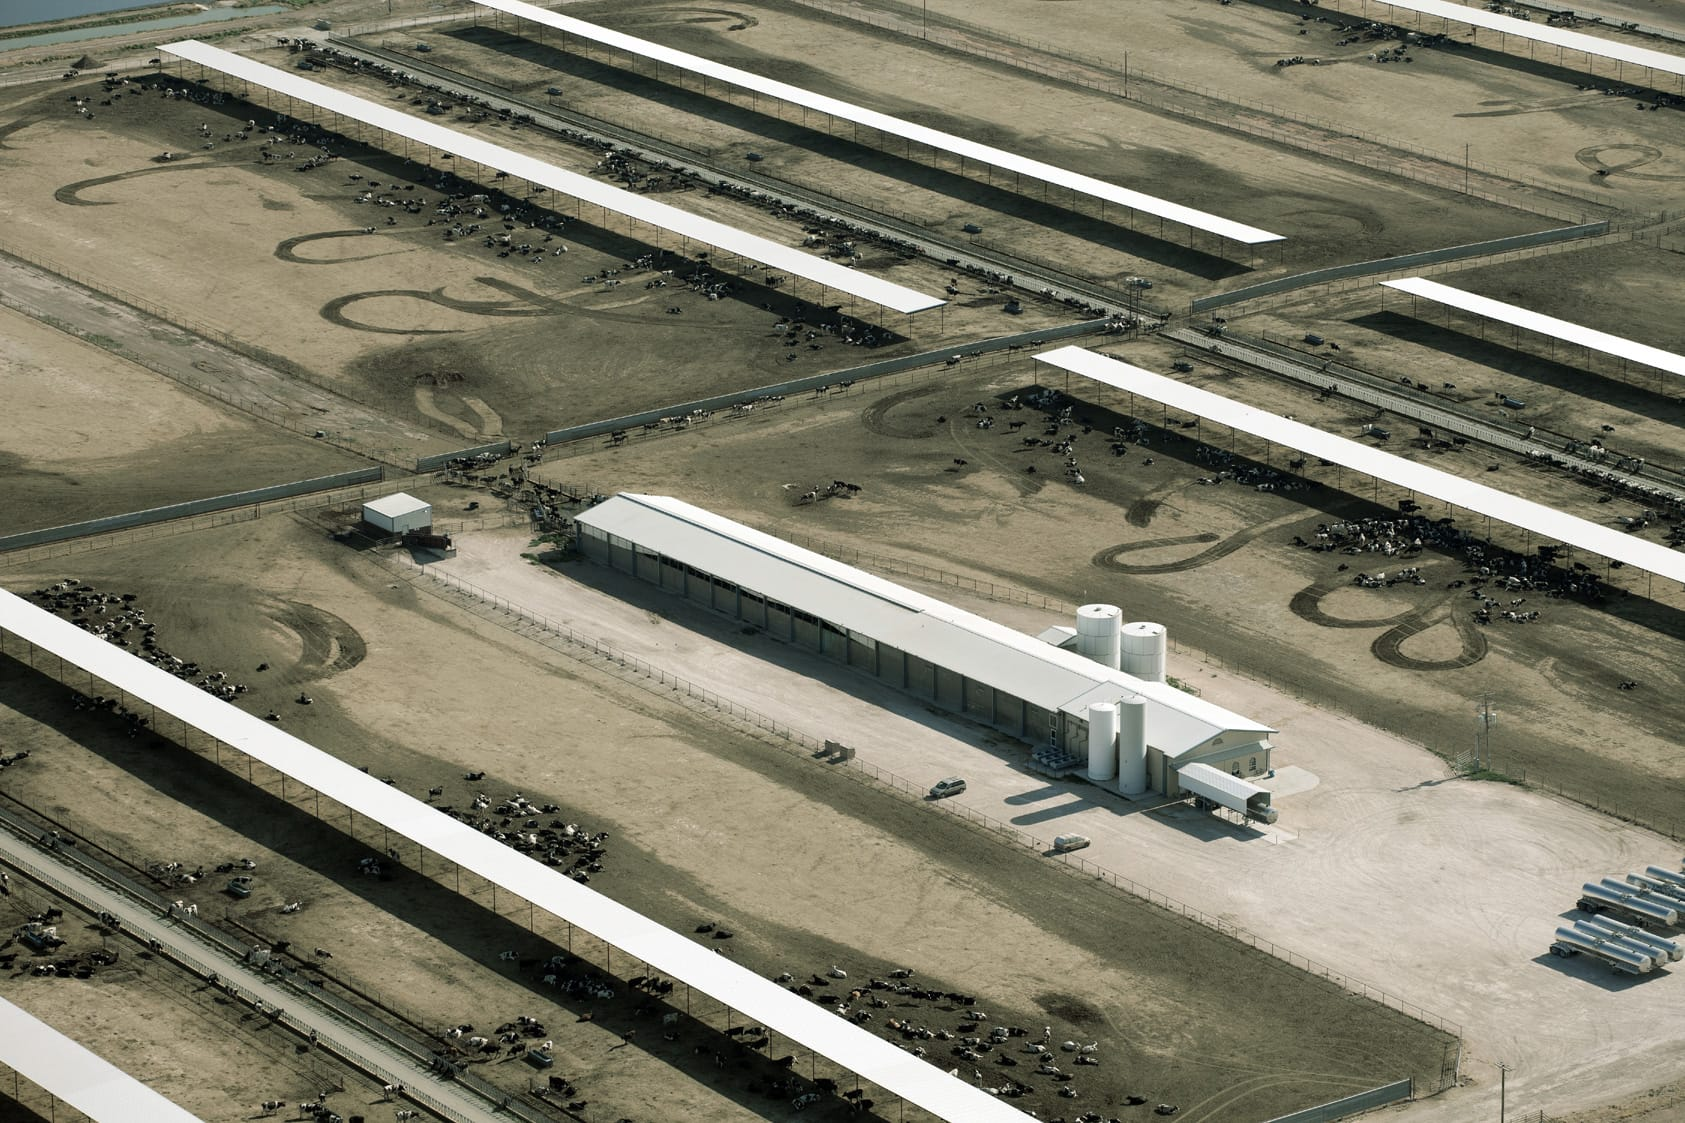 Investigation Factory Farms Producing Massive Quantities Of Organic Milk And Eggs